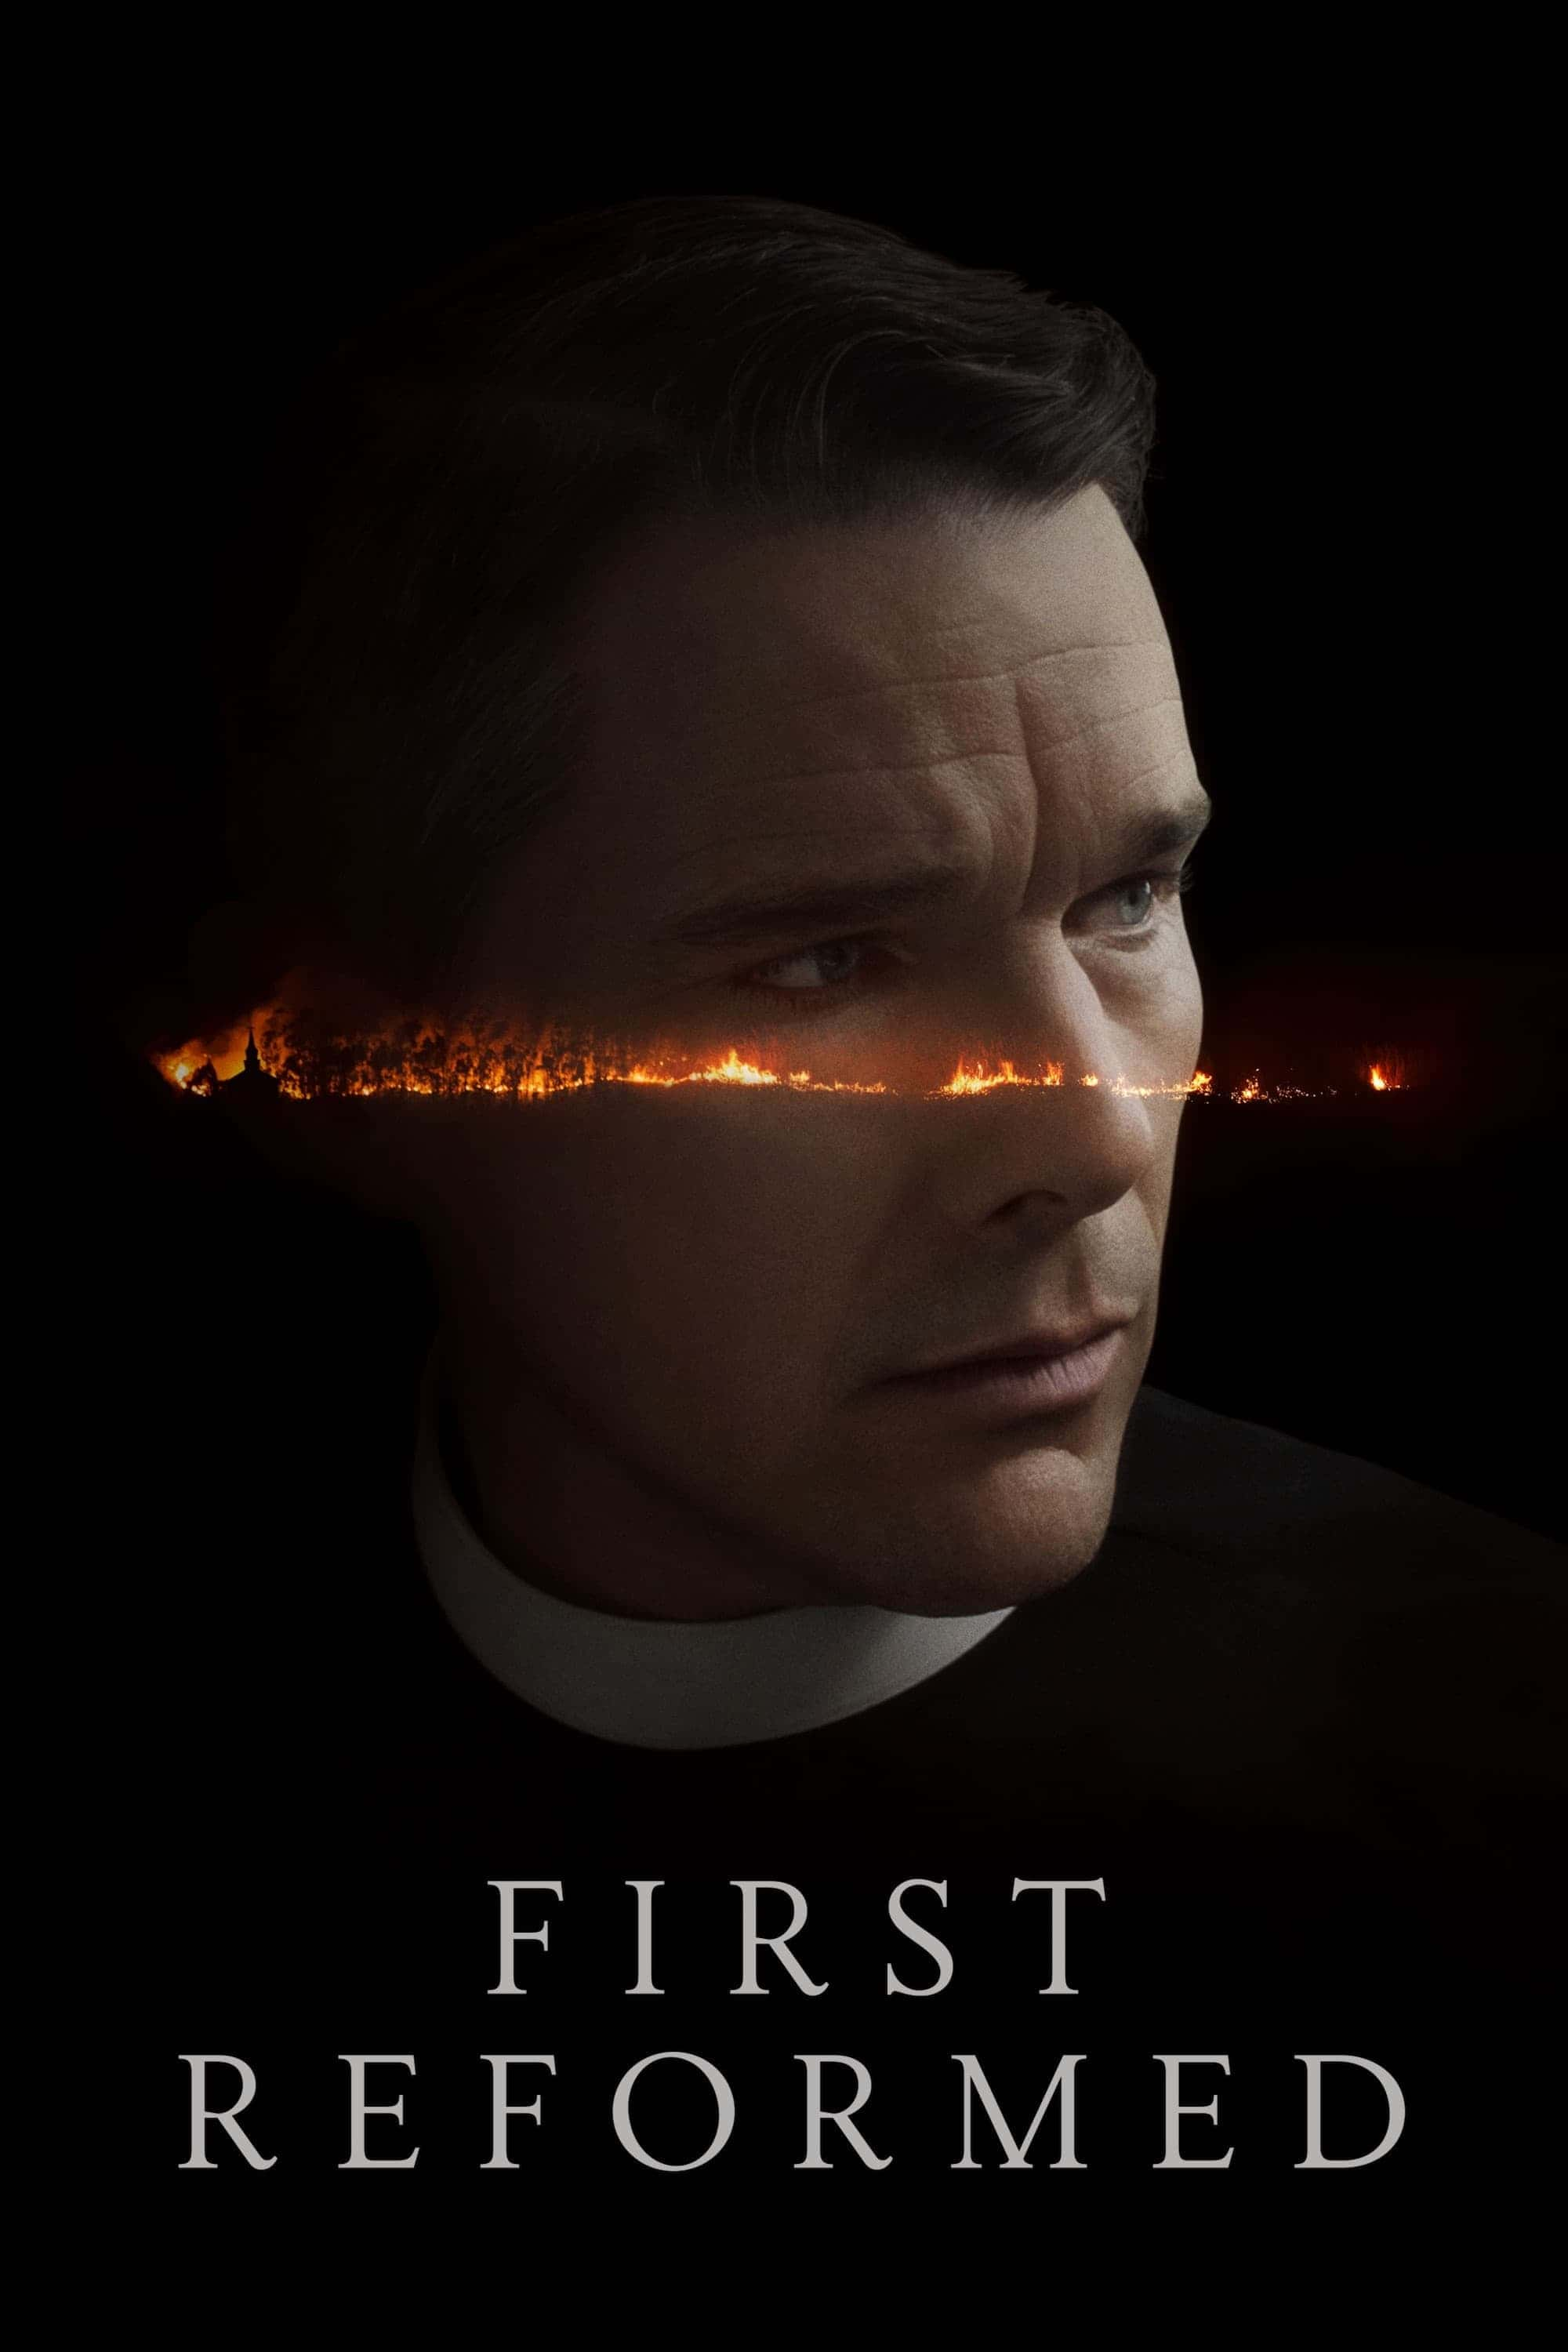 Regarder First Reformed en streaming gratuit